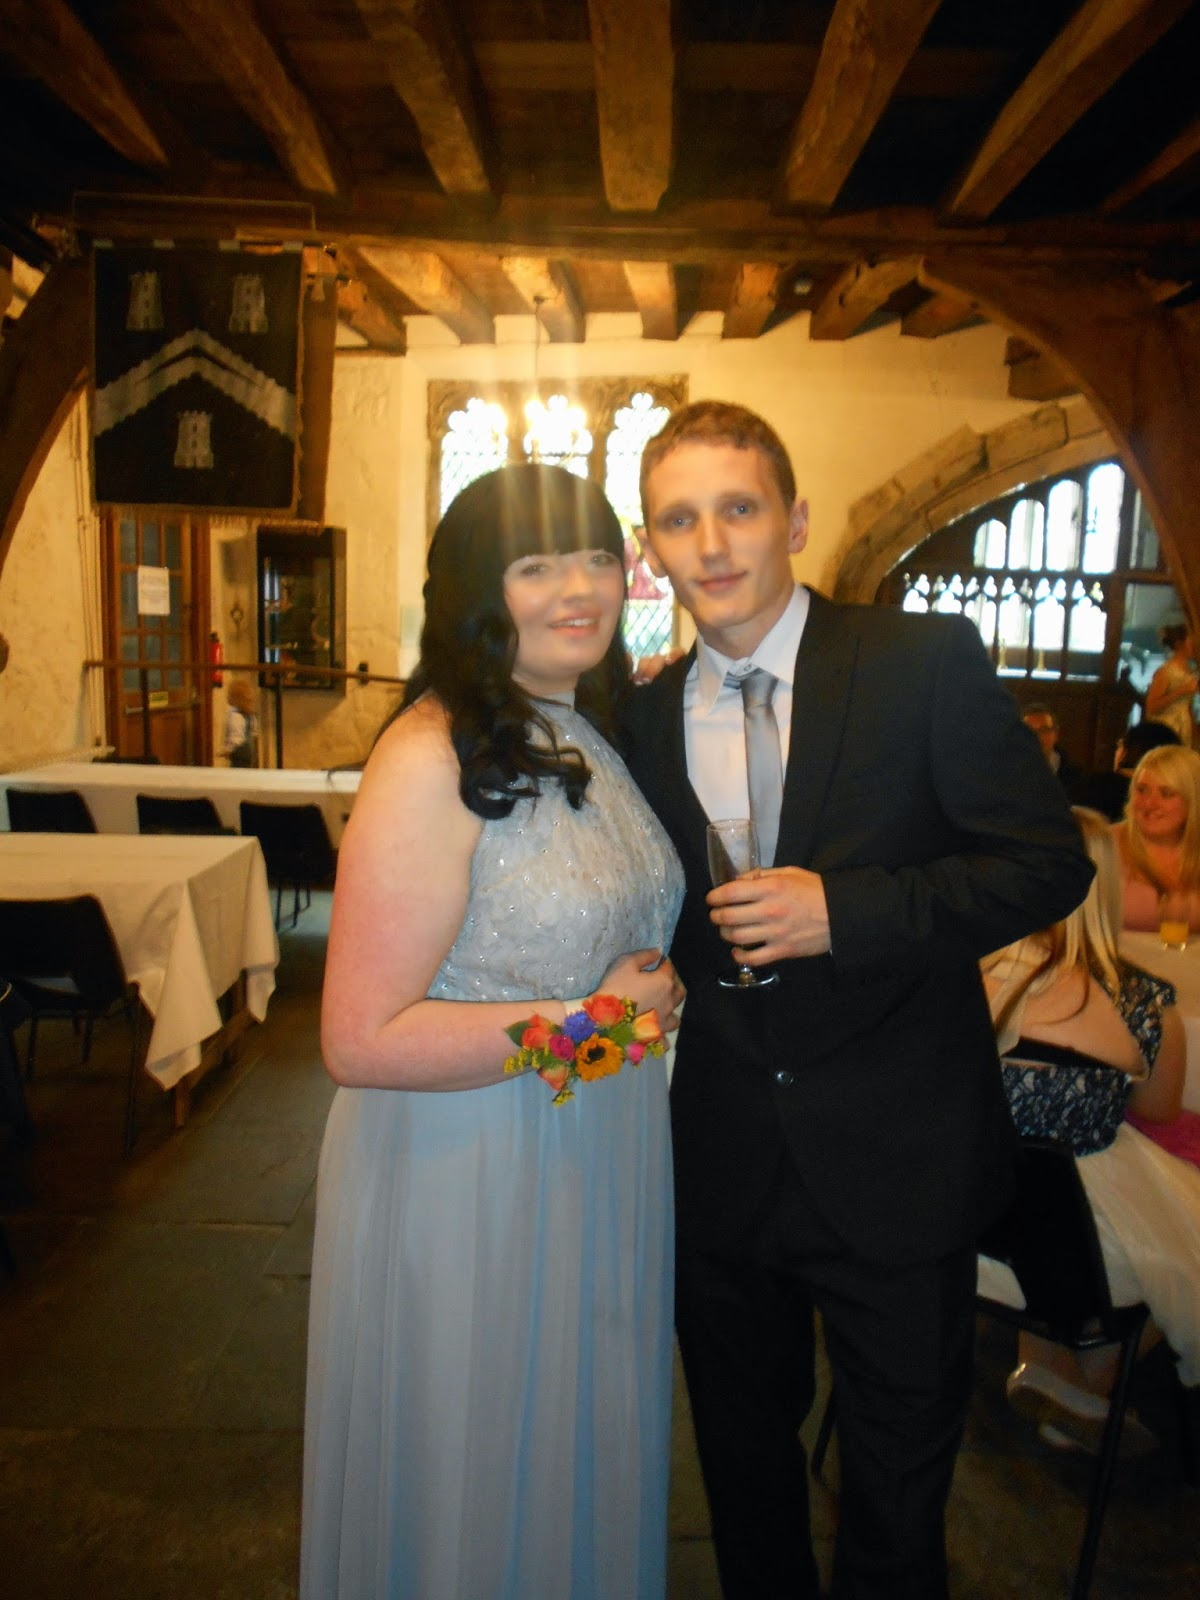 Myself and Gaz - Bridesmaid and Fiancé